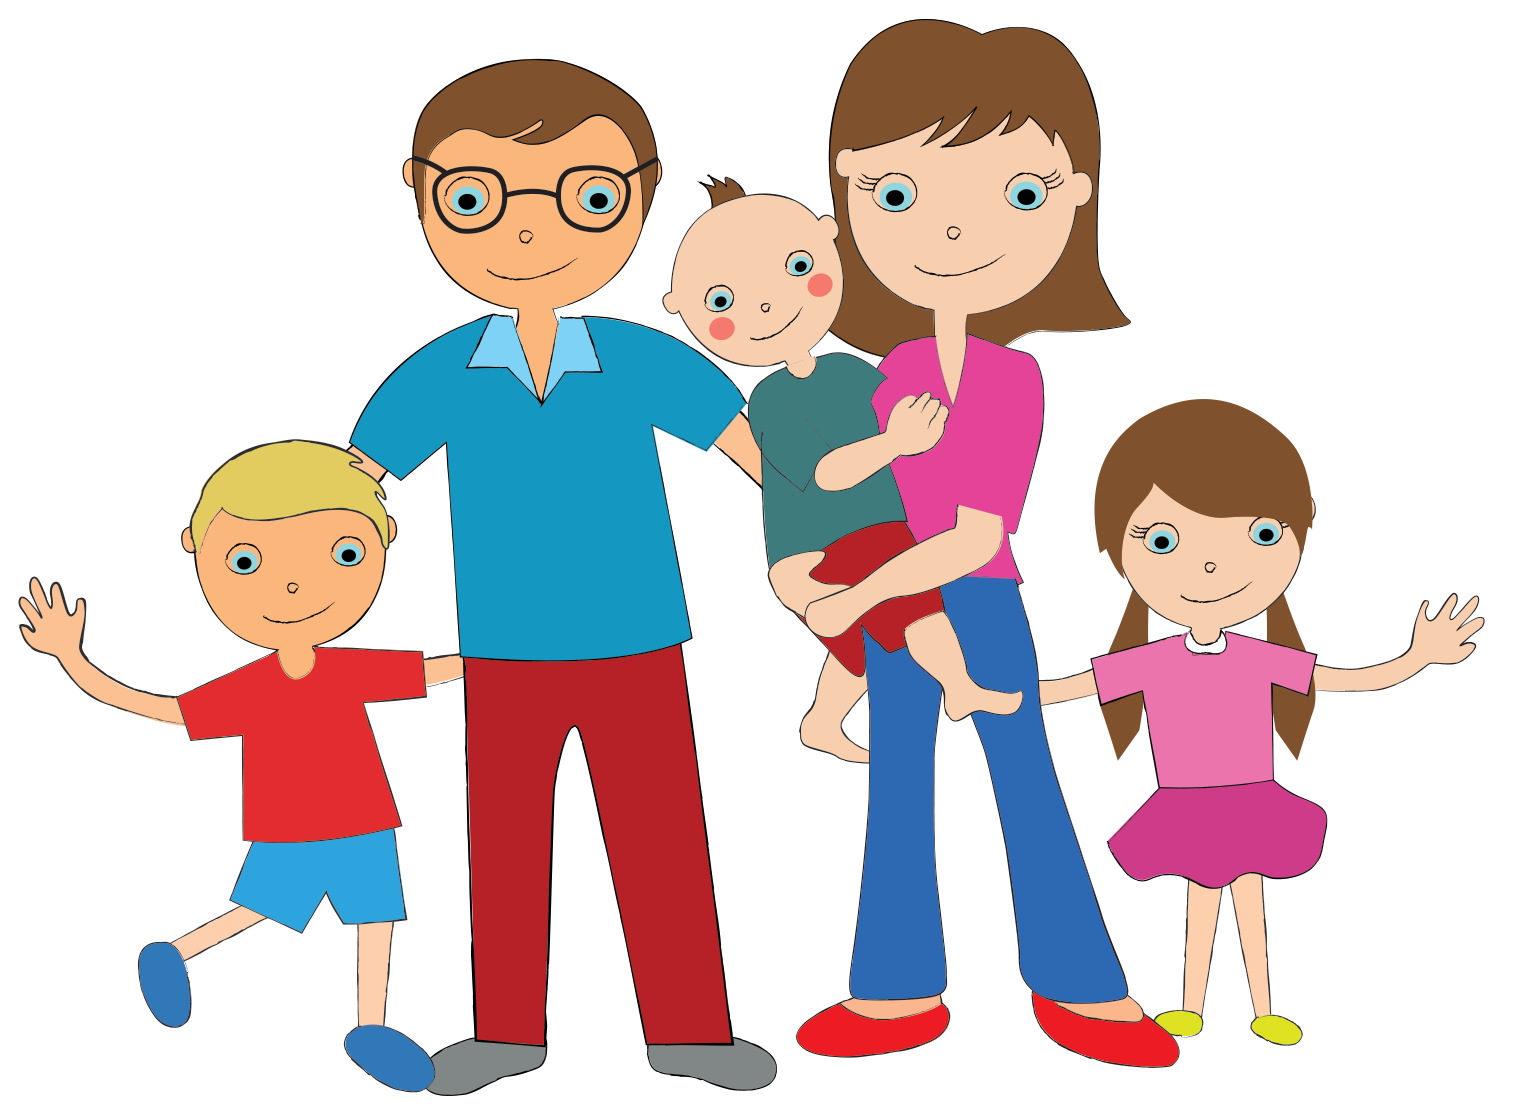 cartoon family of 5 wwwpixsharkcom images galleries